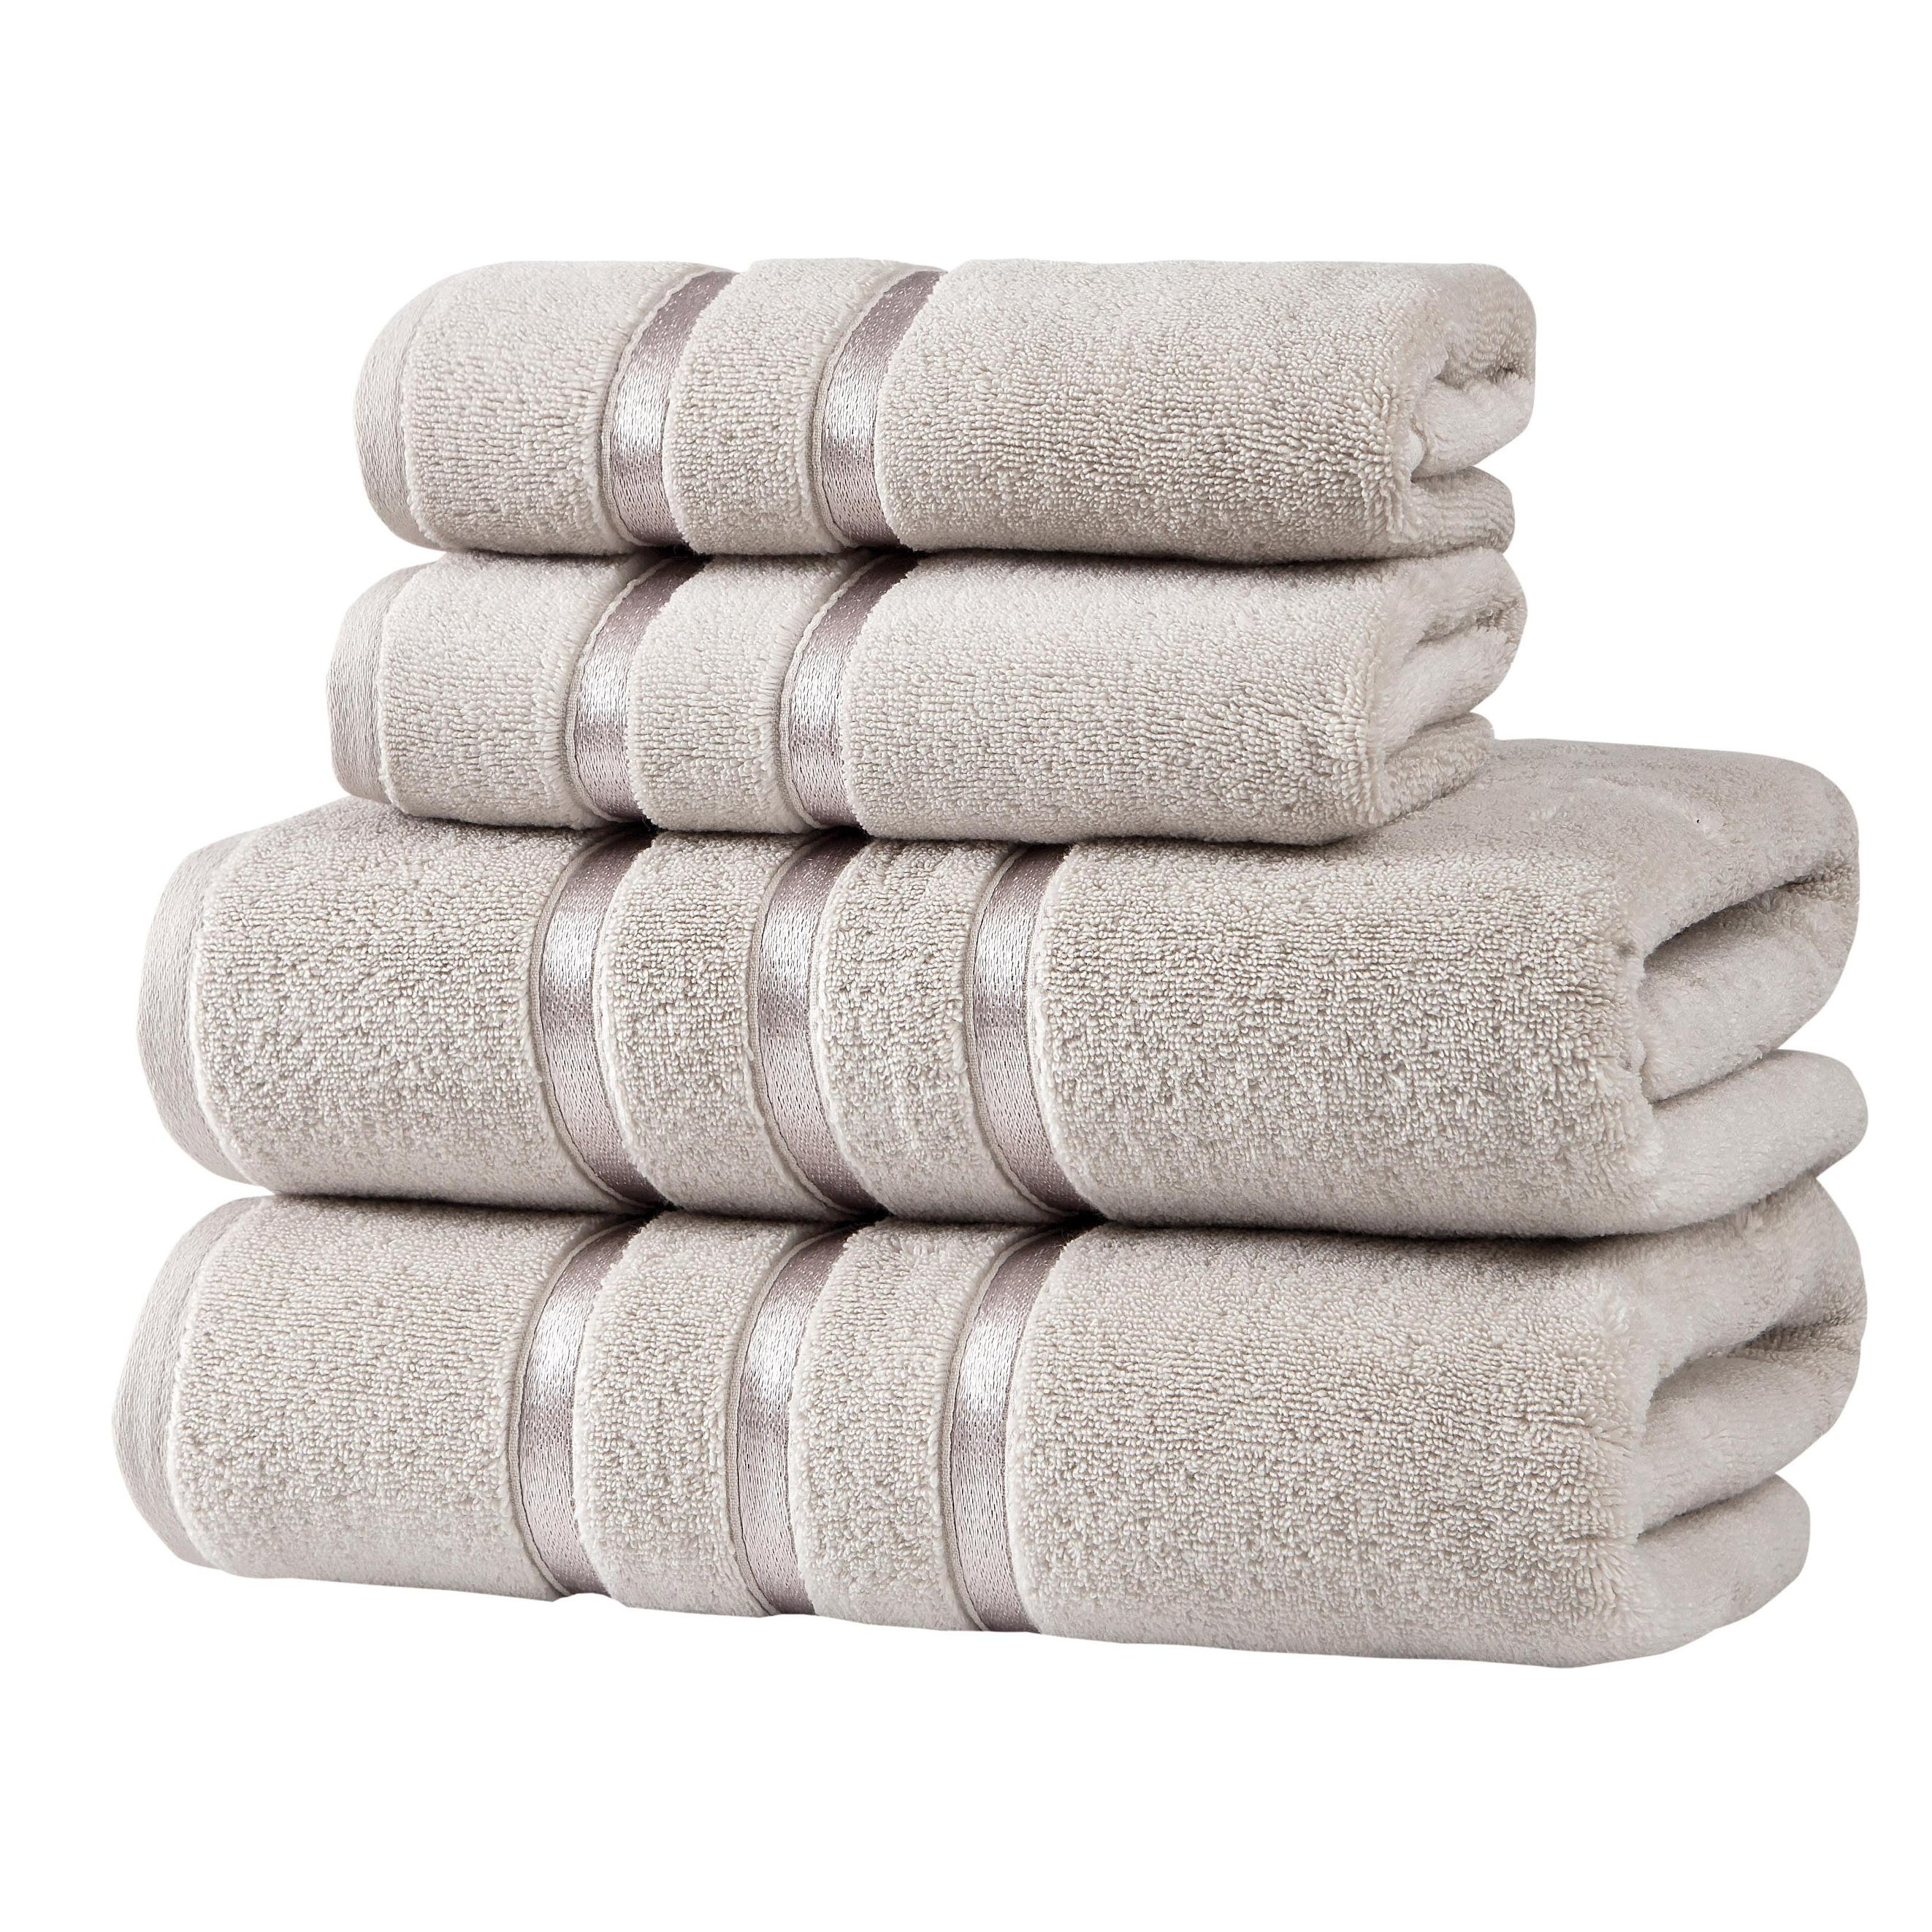 Indulge Linen 100 Turkish Cotton Towel Set Beige Bath Towels Set Of 4 Home Kitchen Bath